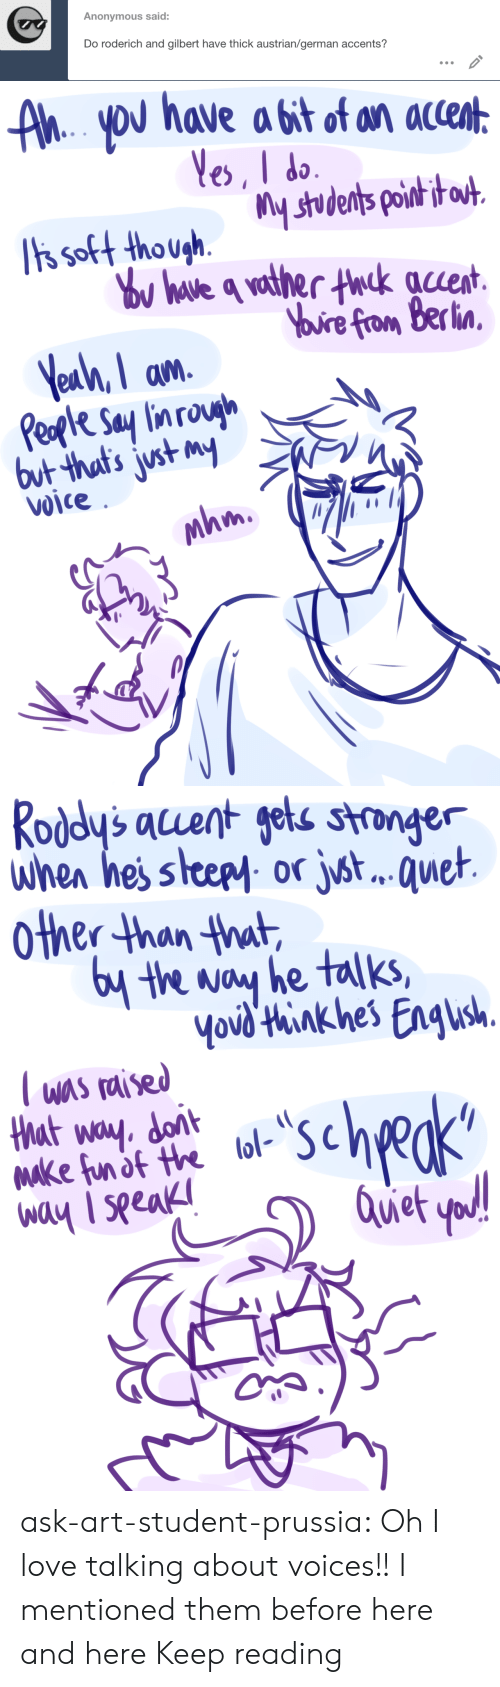 Other Than: Anonymous said:  Do roderich and gilbert have thick austrian/german accents?   AhYoU have a bit of an accent  Yes, I do  ts soft though.  Tis soft thoushstudents poih i  ou have q vather thck auent  Yuire from Berlin  Yeah, I am  Peple Say lin rough  but that's just my  Voice  mhm   Roddy's acuent gets stronger  when hes steepy or jst.. . quet  other than that  6y the way he talks,  Yovd'think hes Engush  T was raised  that way. dont  Make fun of the lol-  way I seeak  scheks  Quet yod! ask-art-student-prussia:  Oh I love talking about voices!! I mentioned them before here and here Keep reading